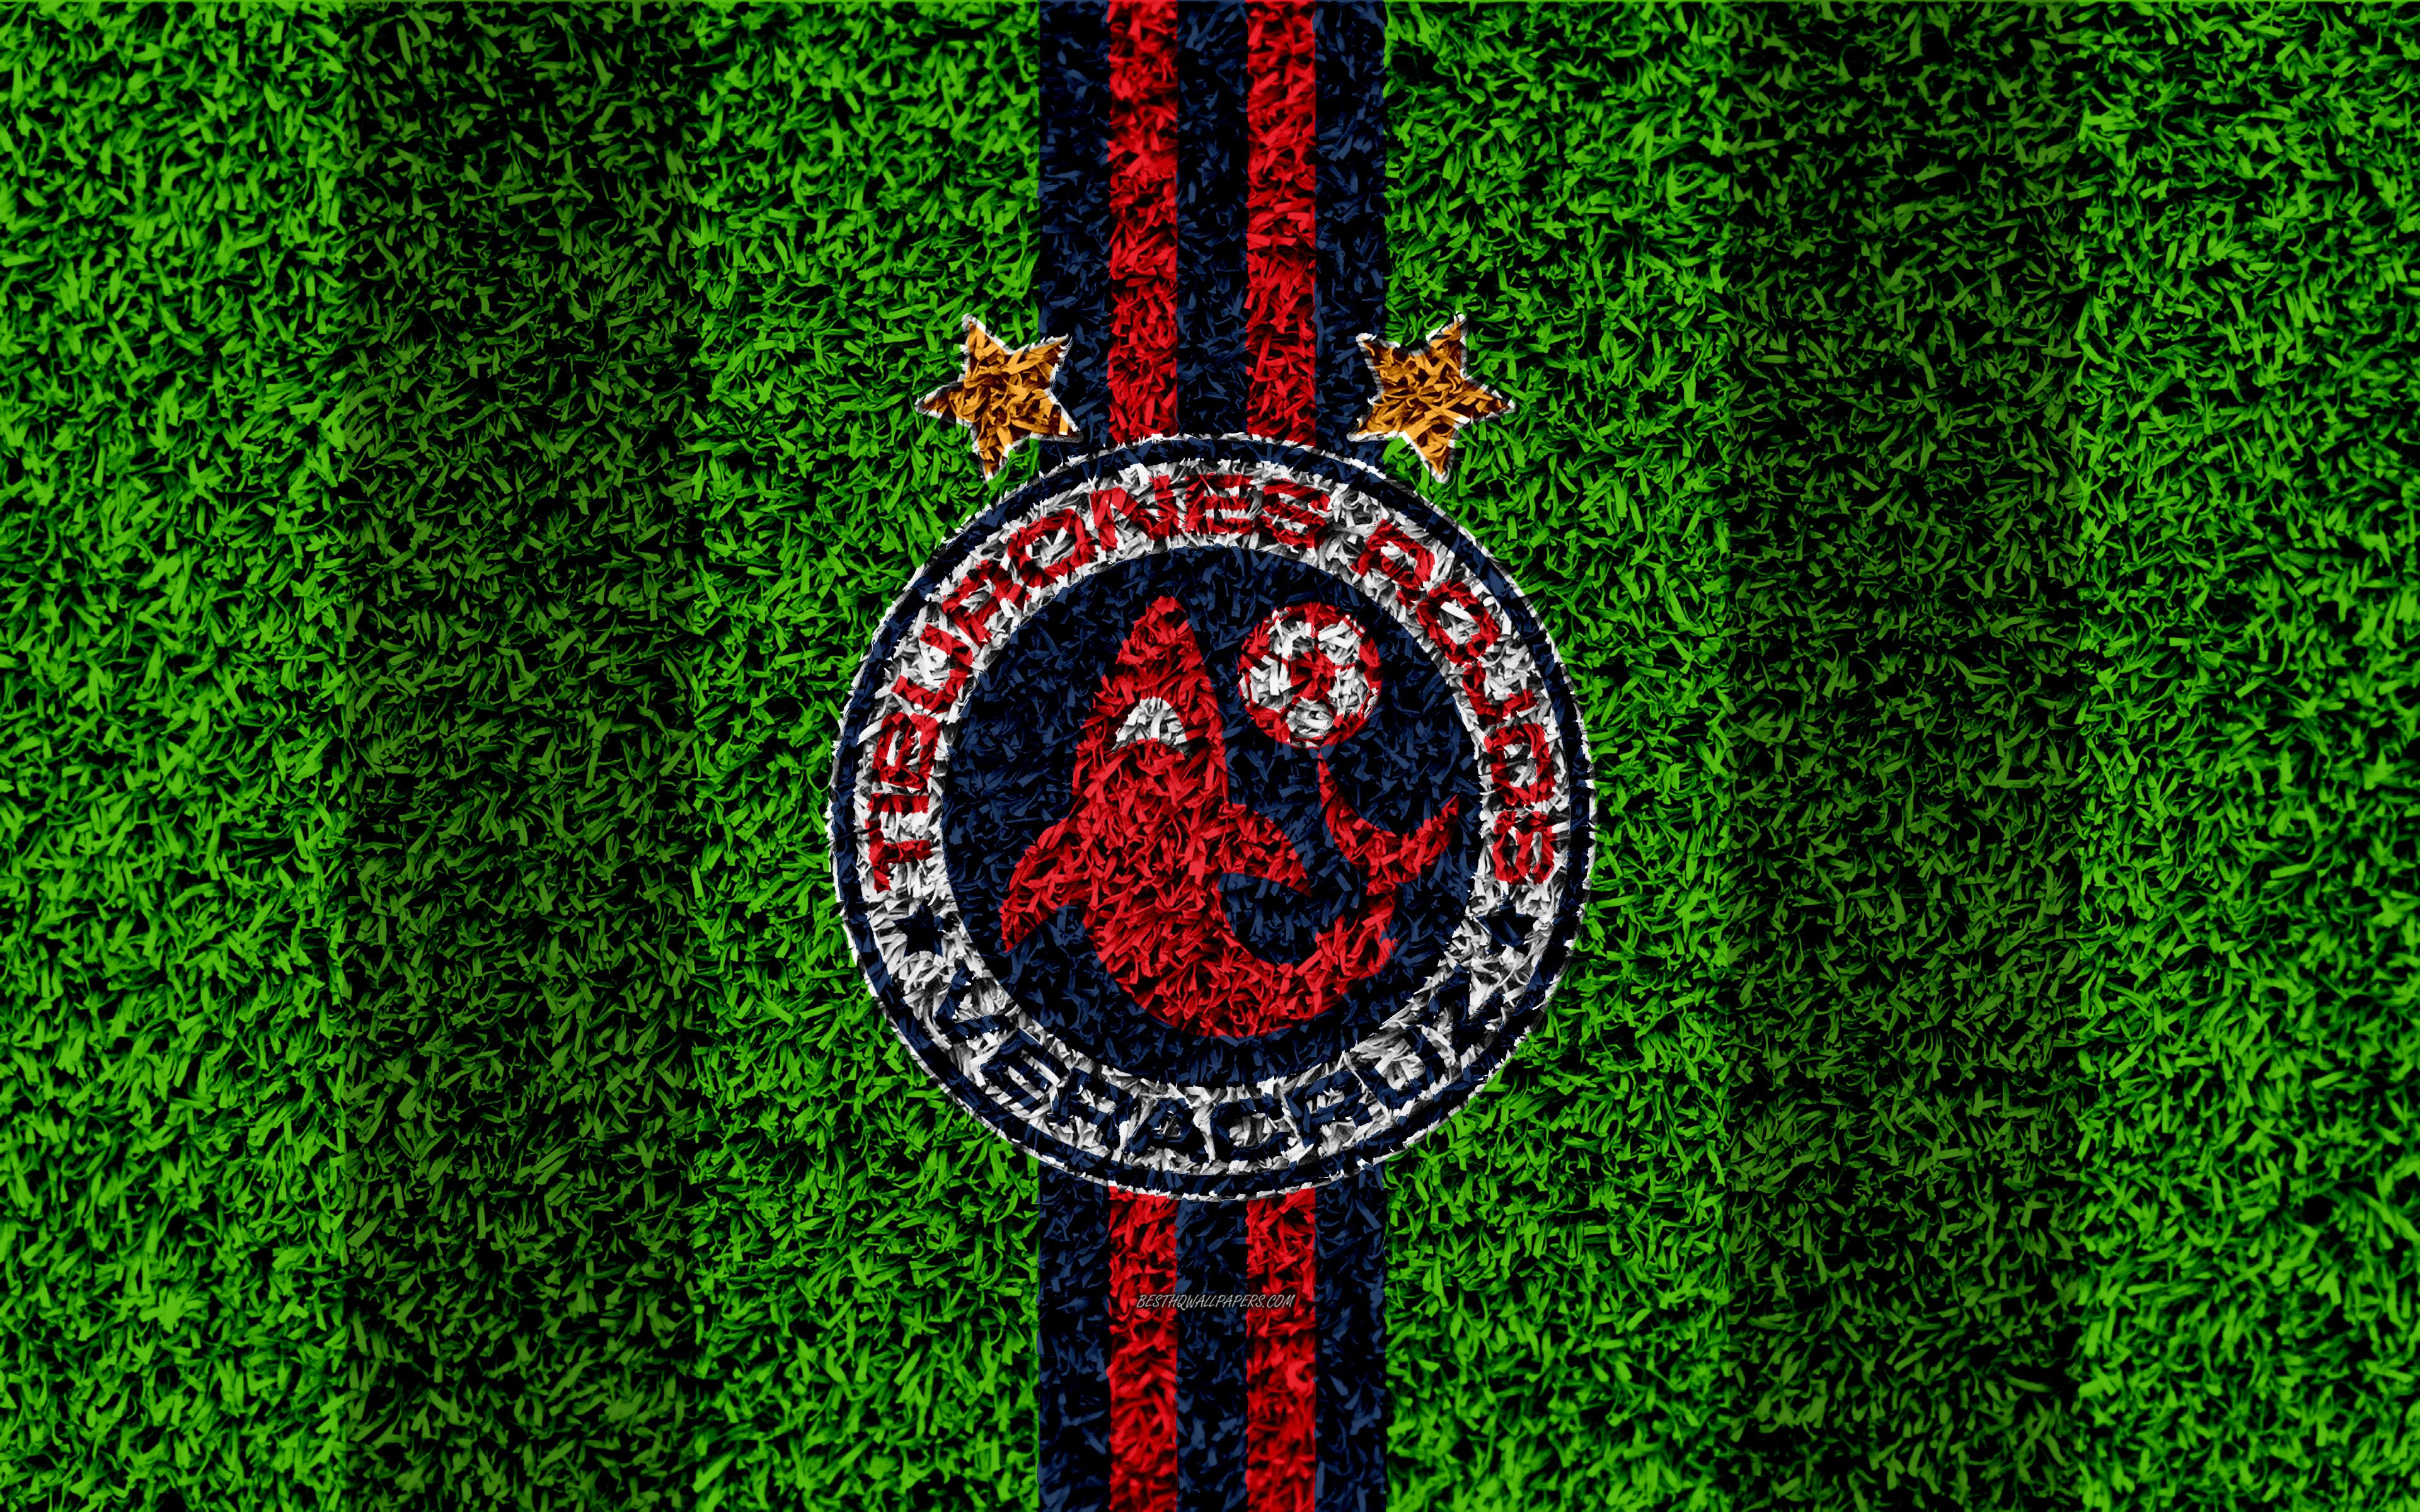 Download wallpapers Veracruz FC, 4k, football lawn, logo, Mexican